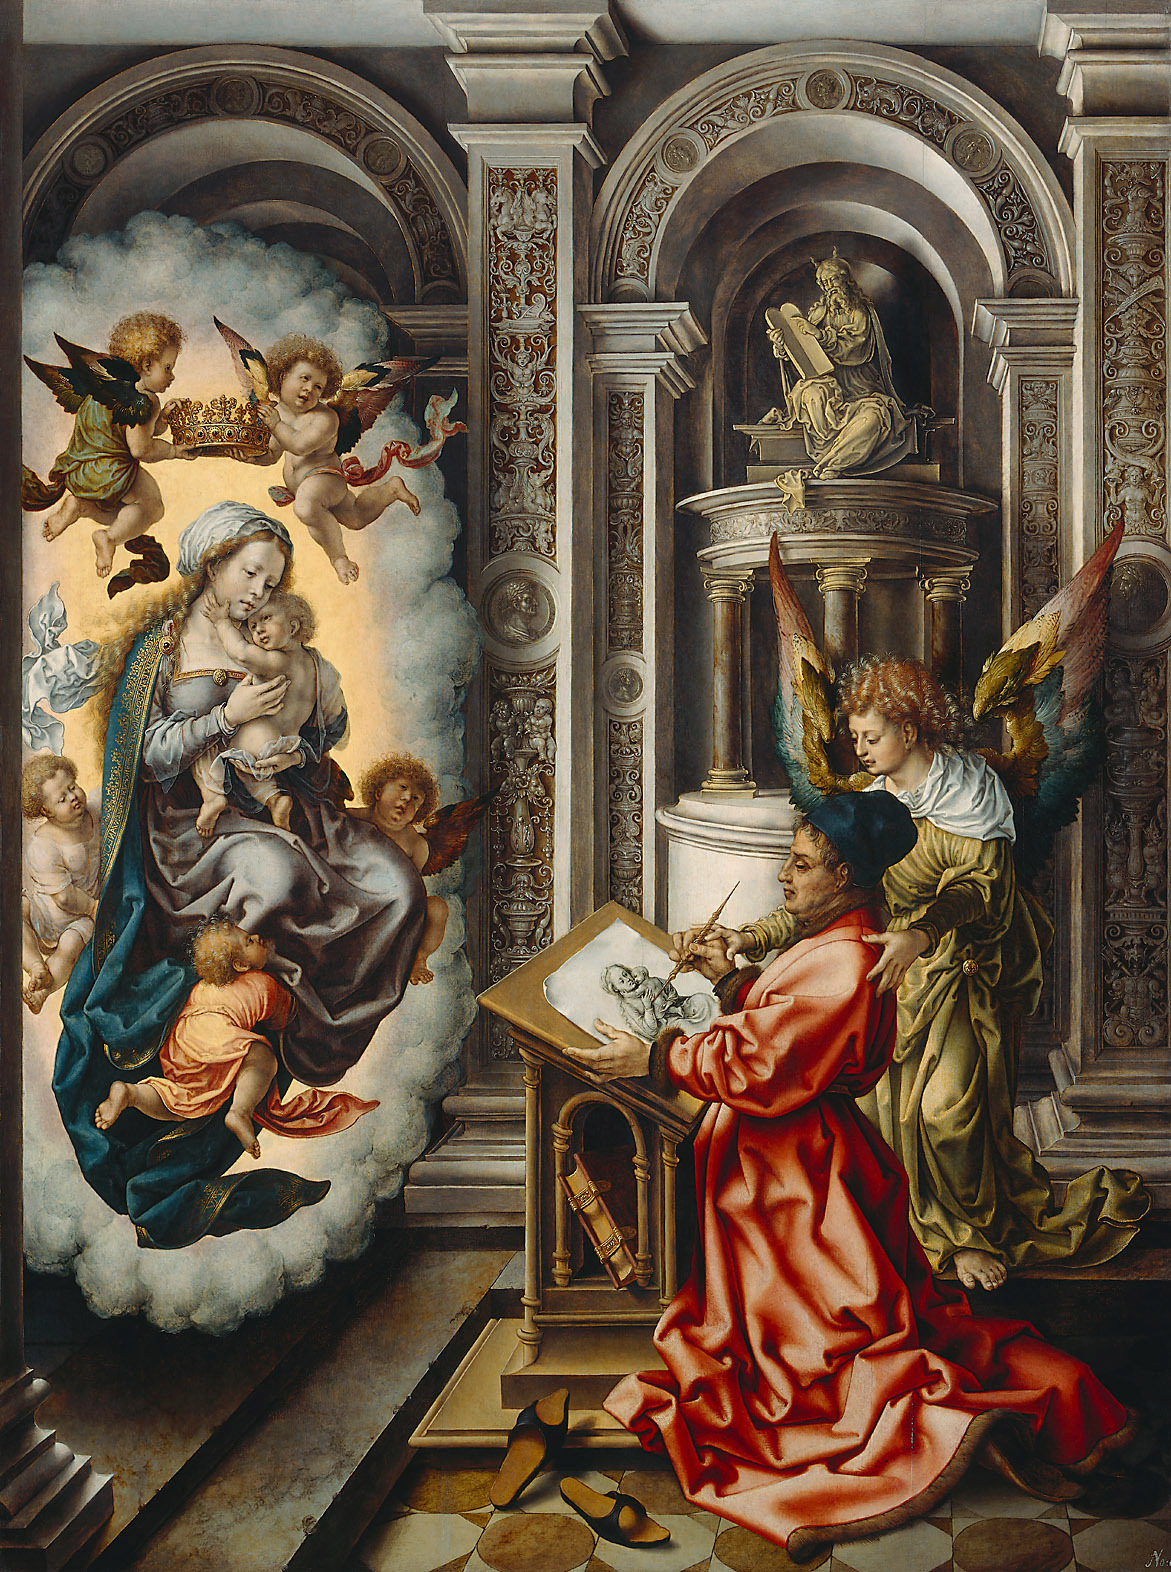 St. Luke Painting the Madonna created in 1520-5